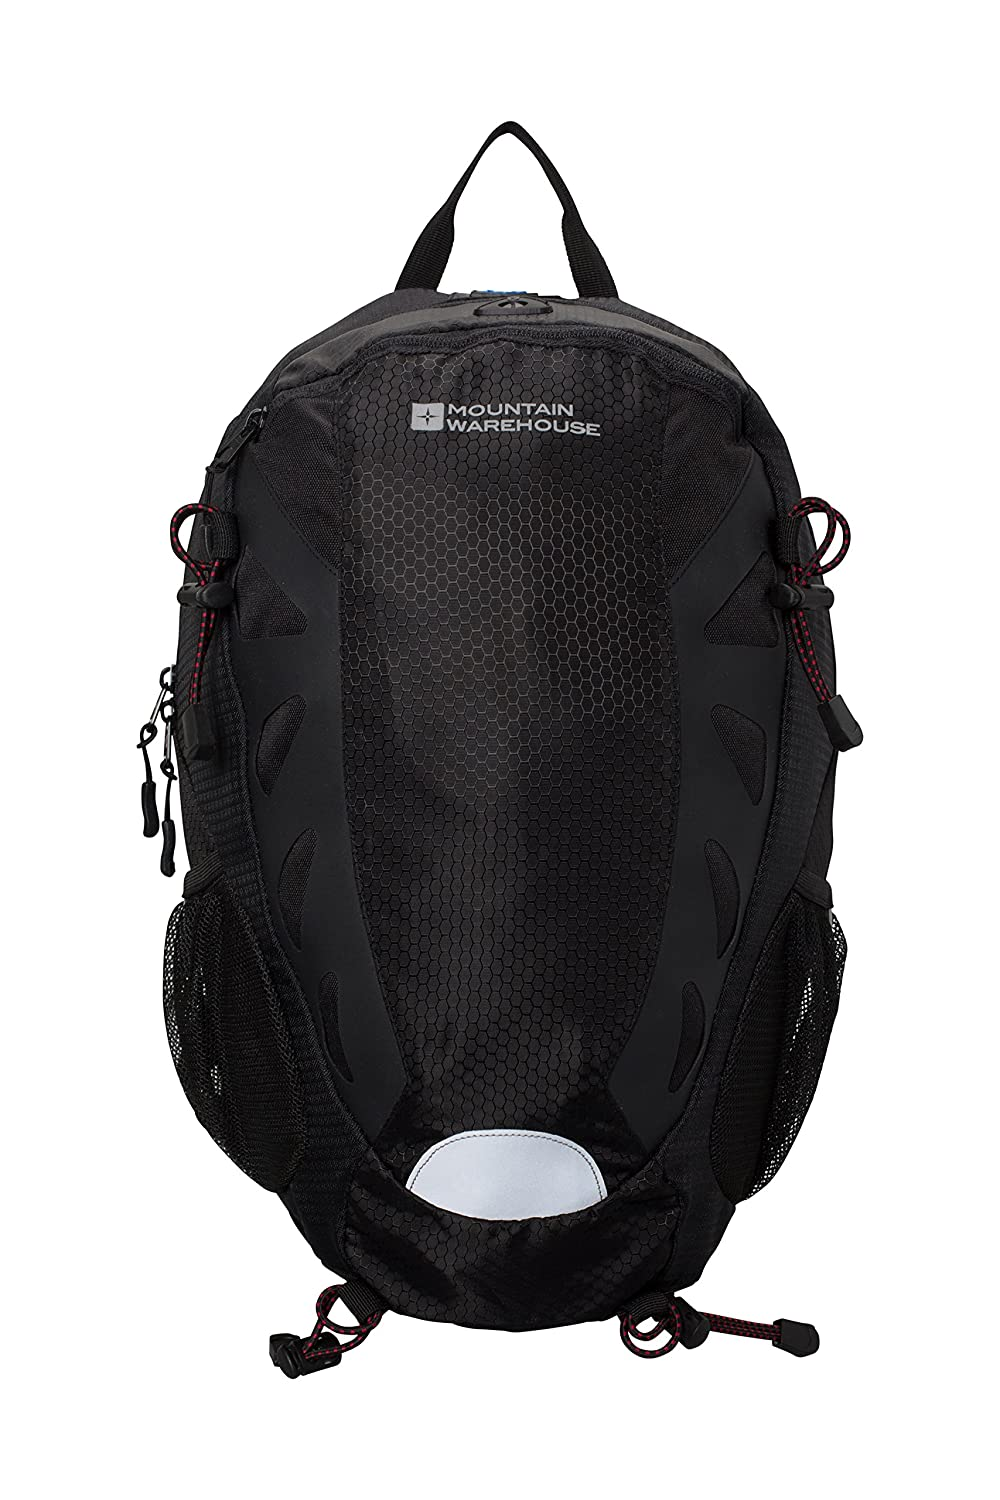 Mountain Warehouse Force Cycle 22L Hydro Bag -High Vis Hydration Pack chic